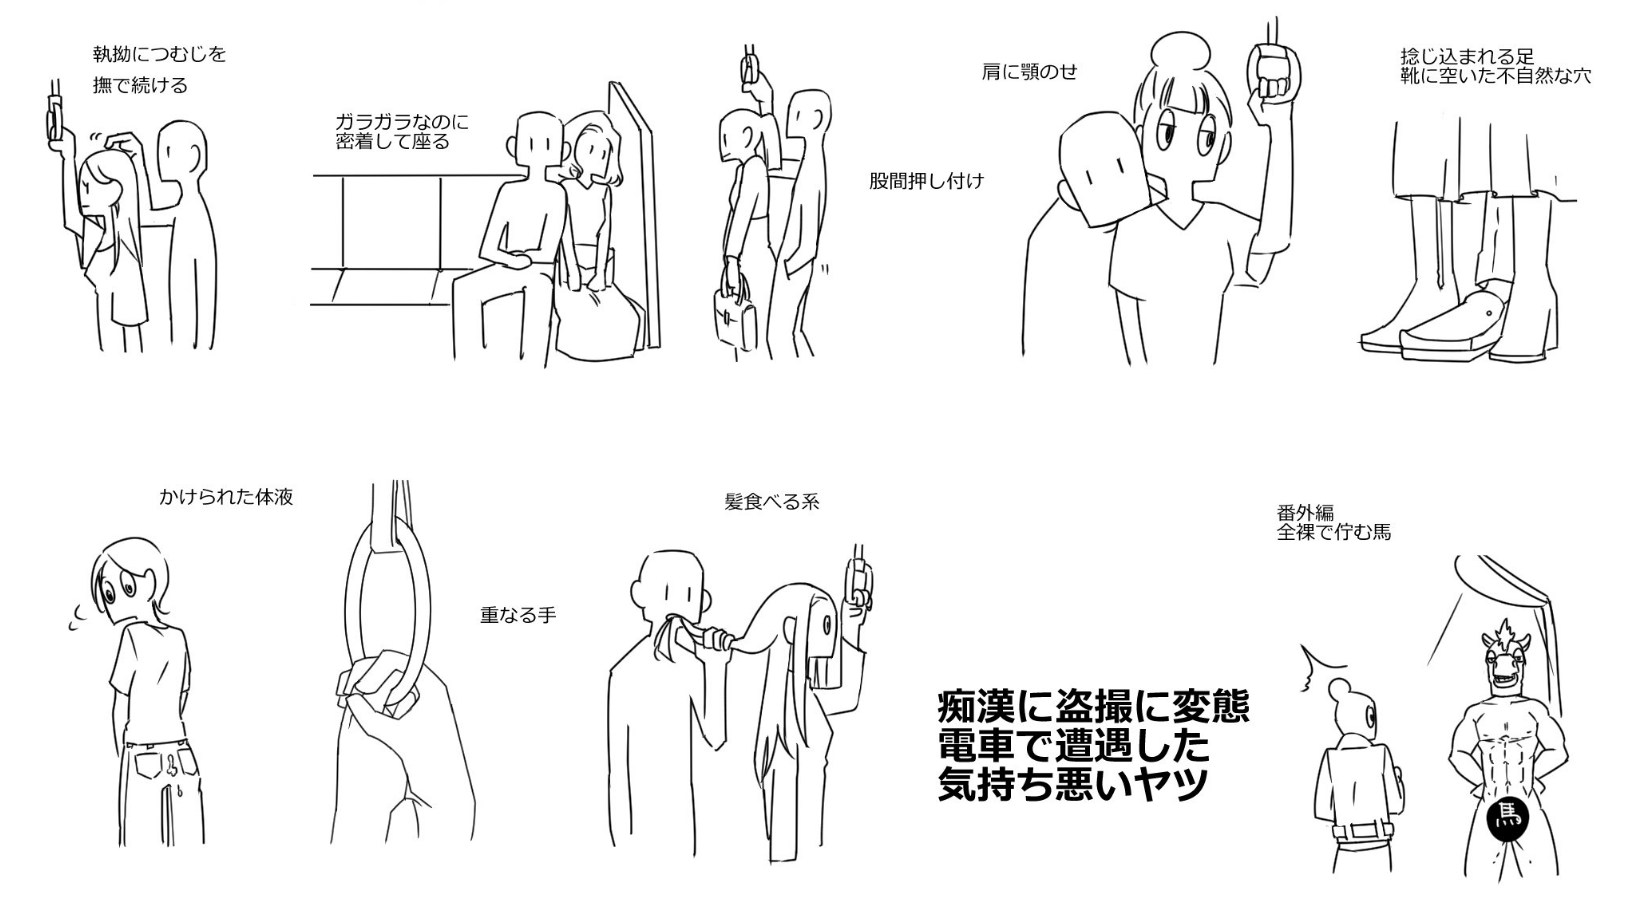 Examples of various sexual harassers on the Japanese subway, by the Osaka-based illustrator Nago, who tweets under the handle @ikng_0.